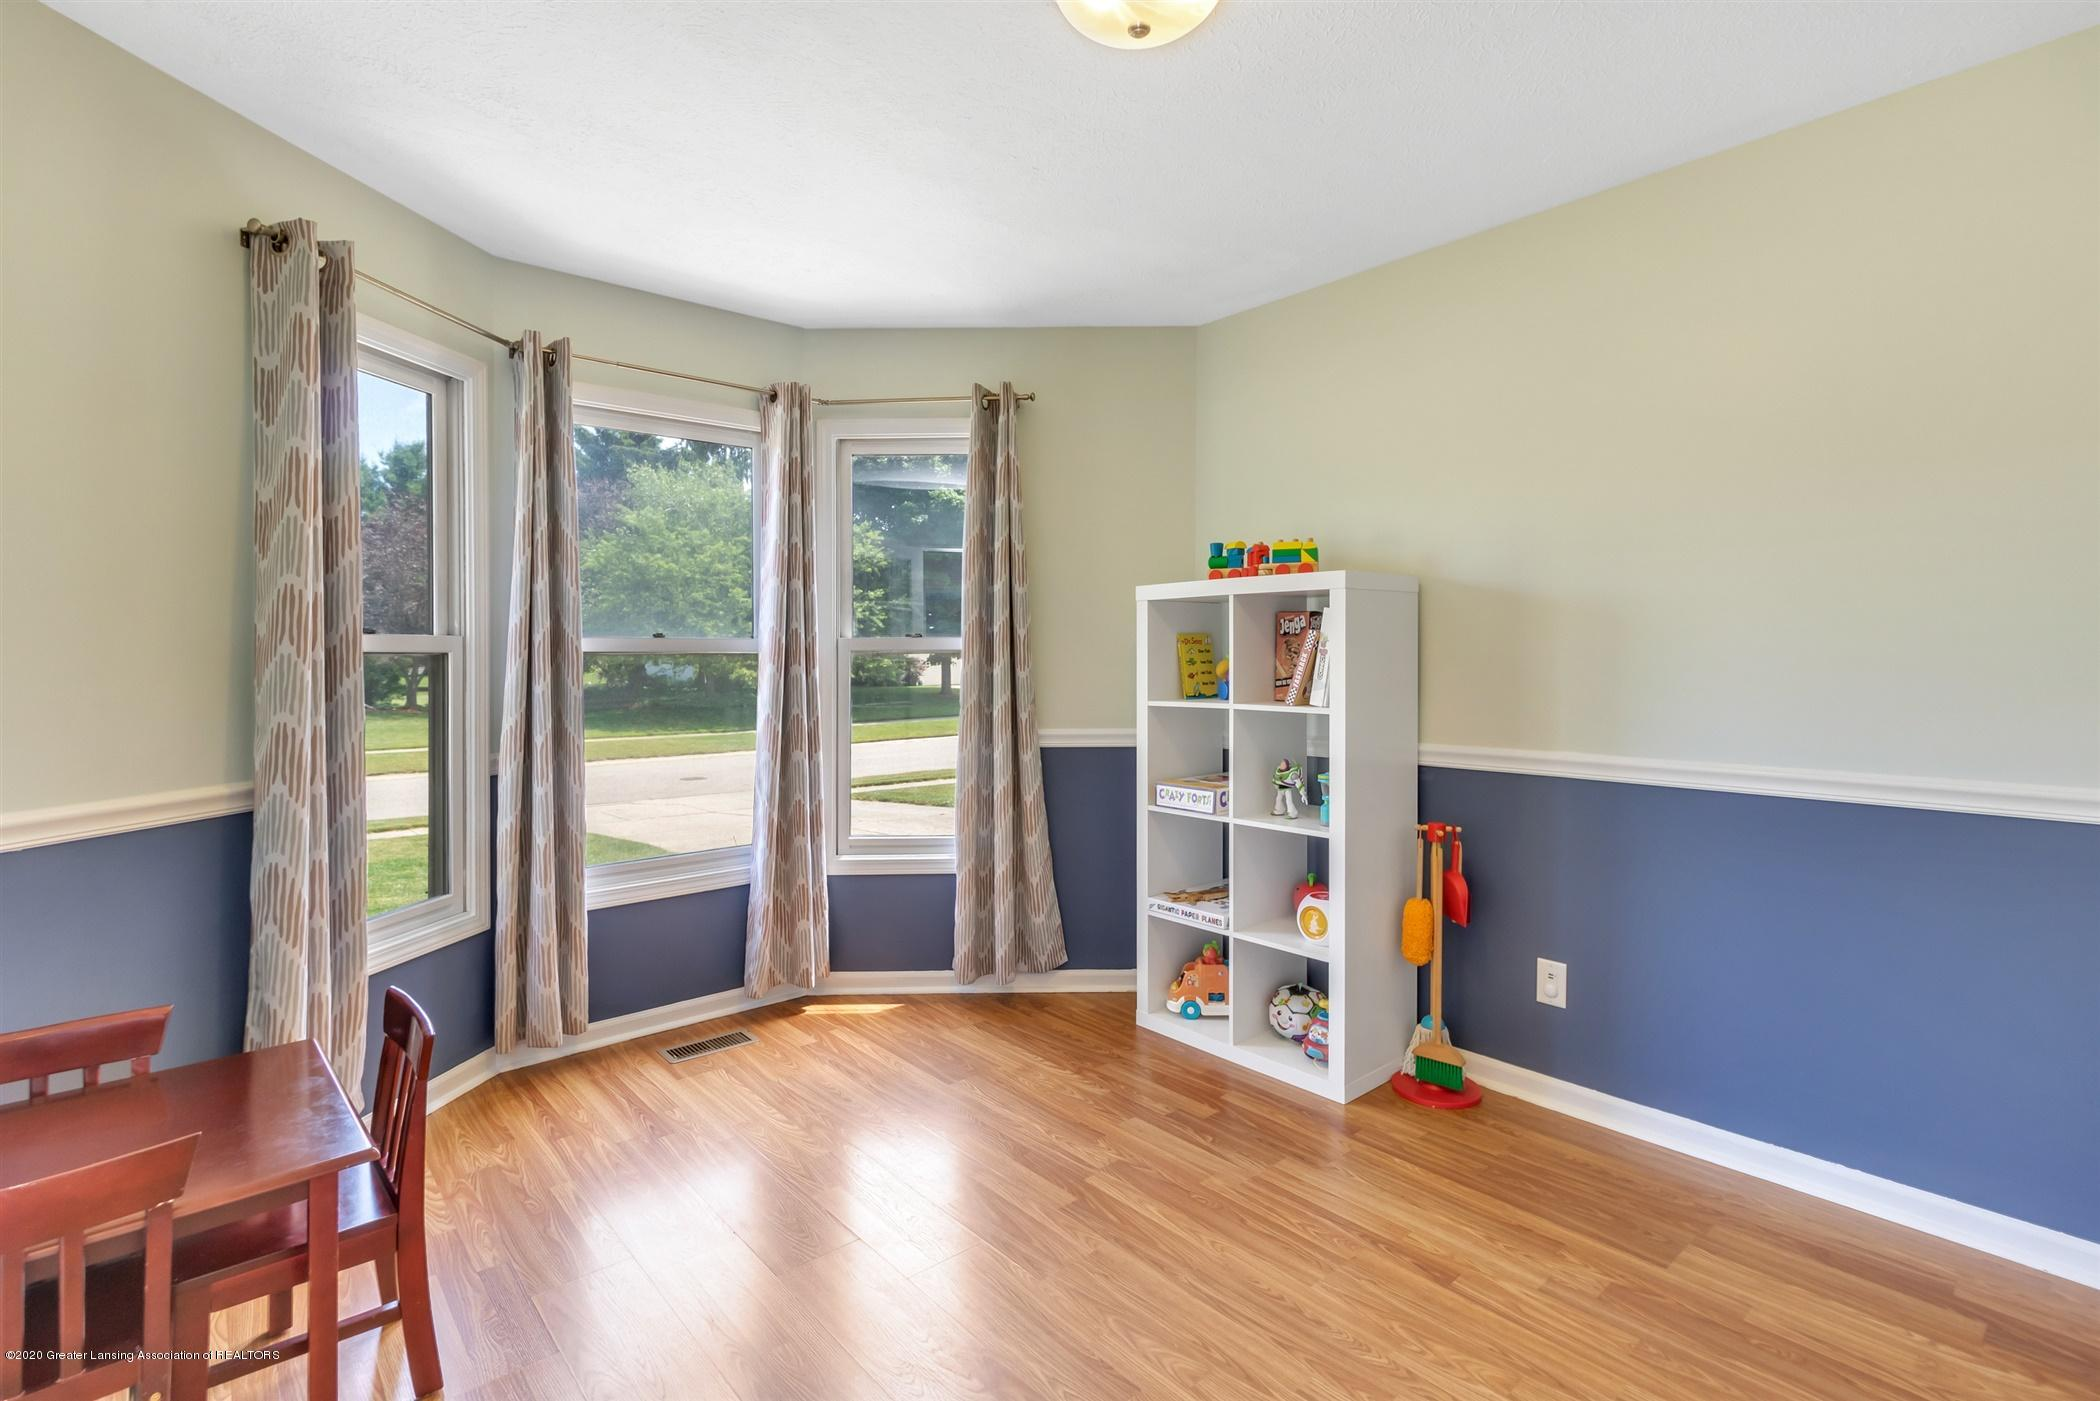 2945 Whistlewood Way - 07-2945Whistlewood-WindowStill-Real - 7